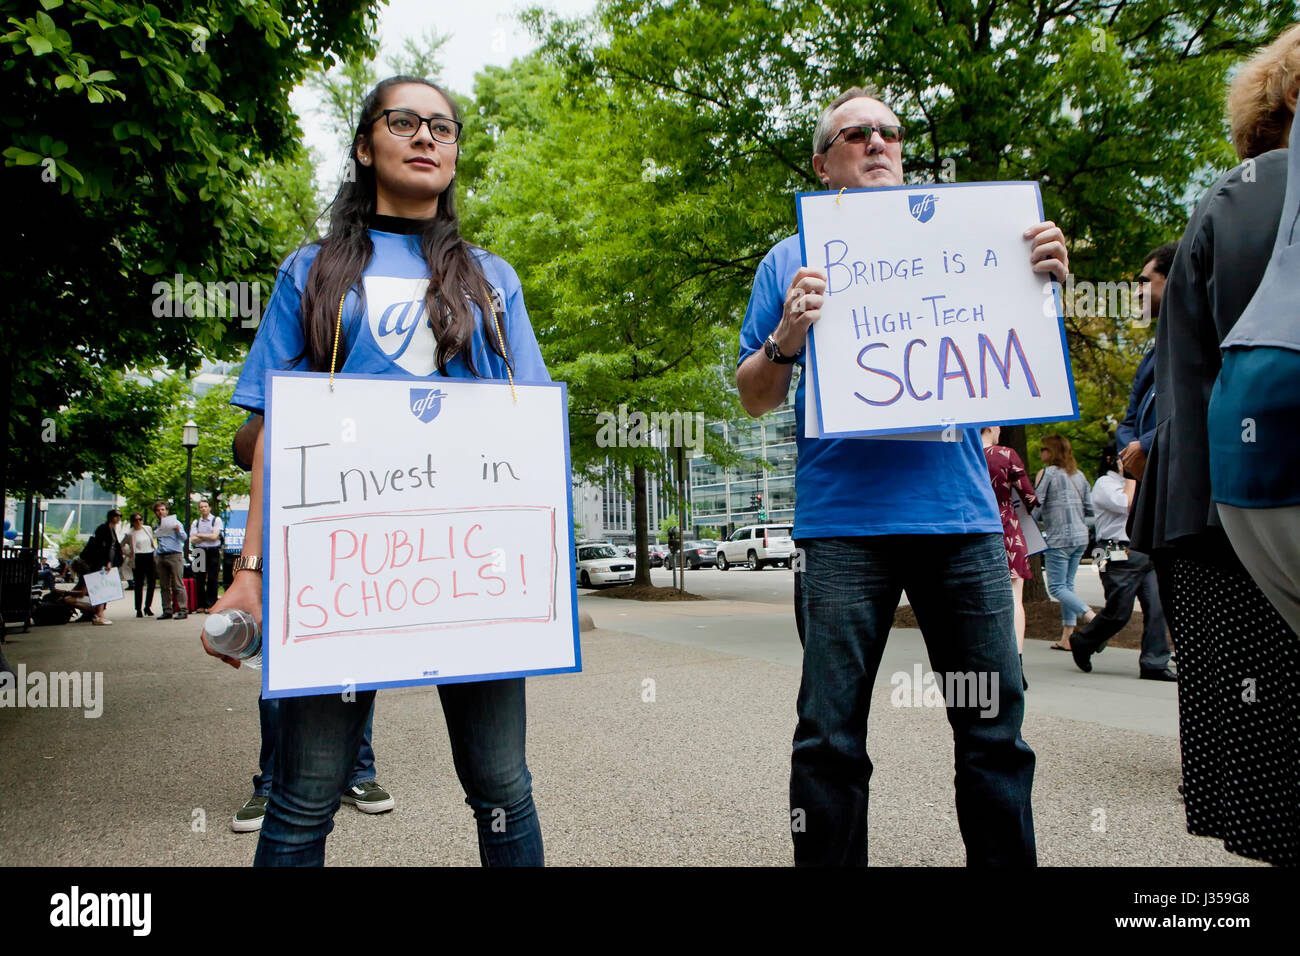 April 21, 2017, Washington, DC USA: Members of AFT (American Federation of Teachers) rally in support of public - Stock Image